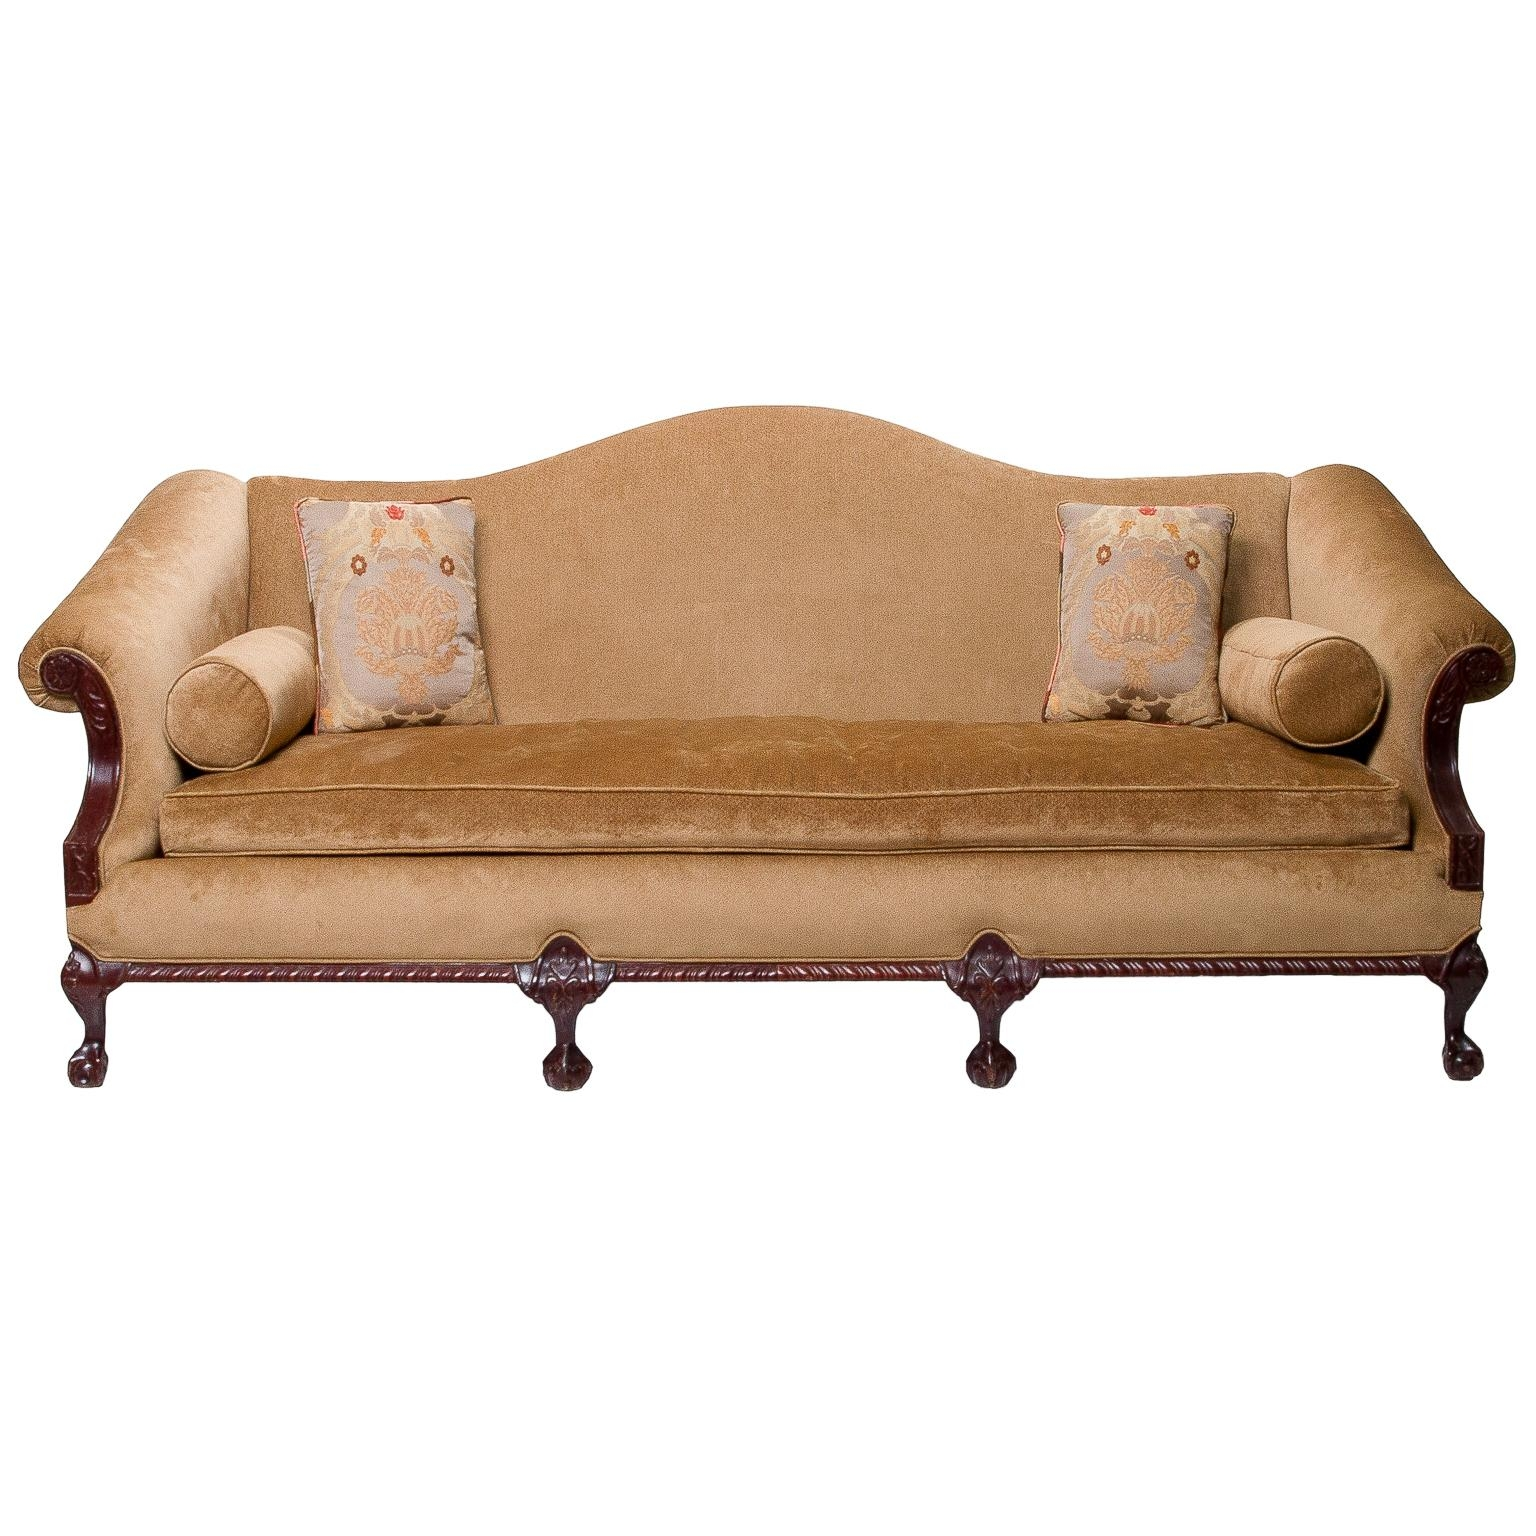 A Vintage Chippendale Camel Back Sofa » Northgate Gallery Antiques Within Chippendale Camelback Sofas (Image 1 of 20)